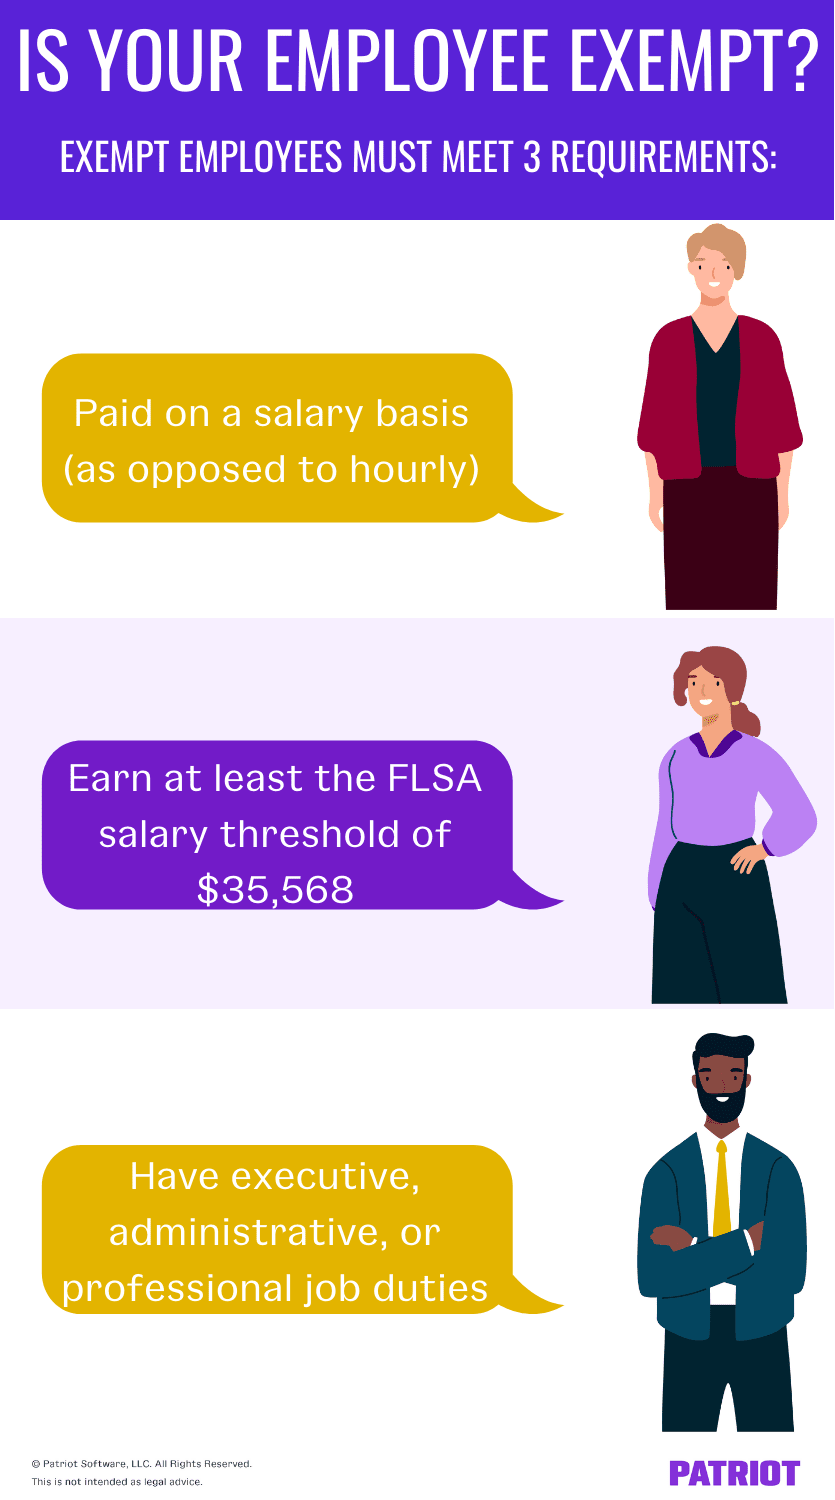 Is your employee exempt? Exempt employees must meet 3 requirements: 1) Paid on a salary basis (as opposed to hourly) 2) Earn at least the FLSA salary threshold of $35,568 3) Have executive, administrative, or professional job duties